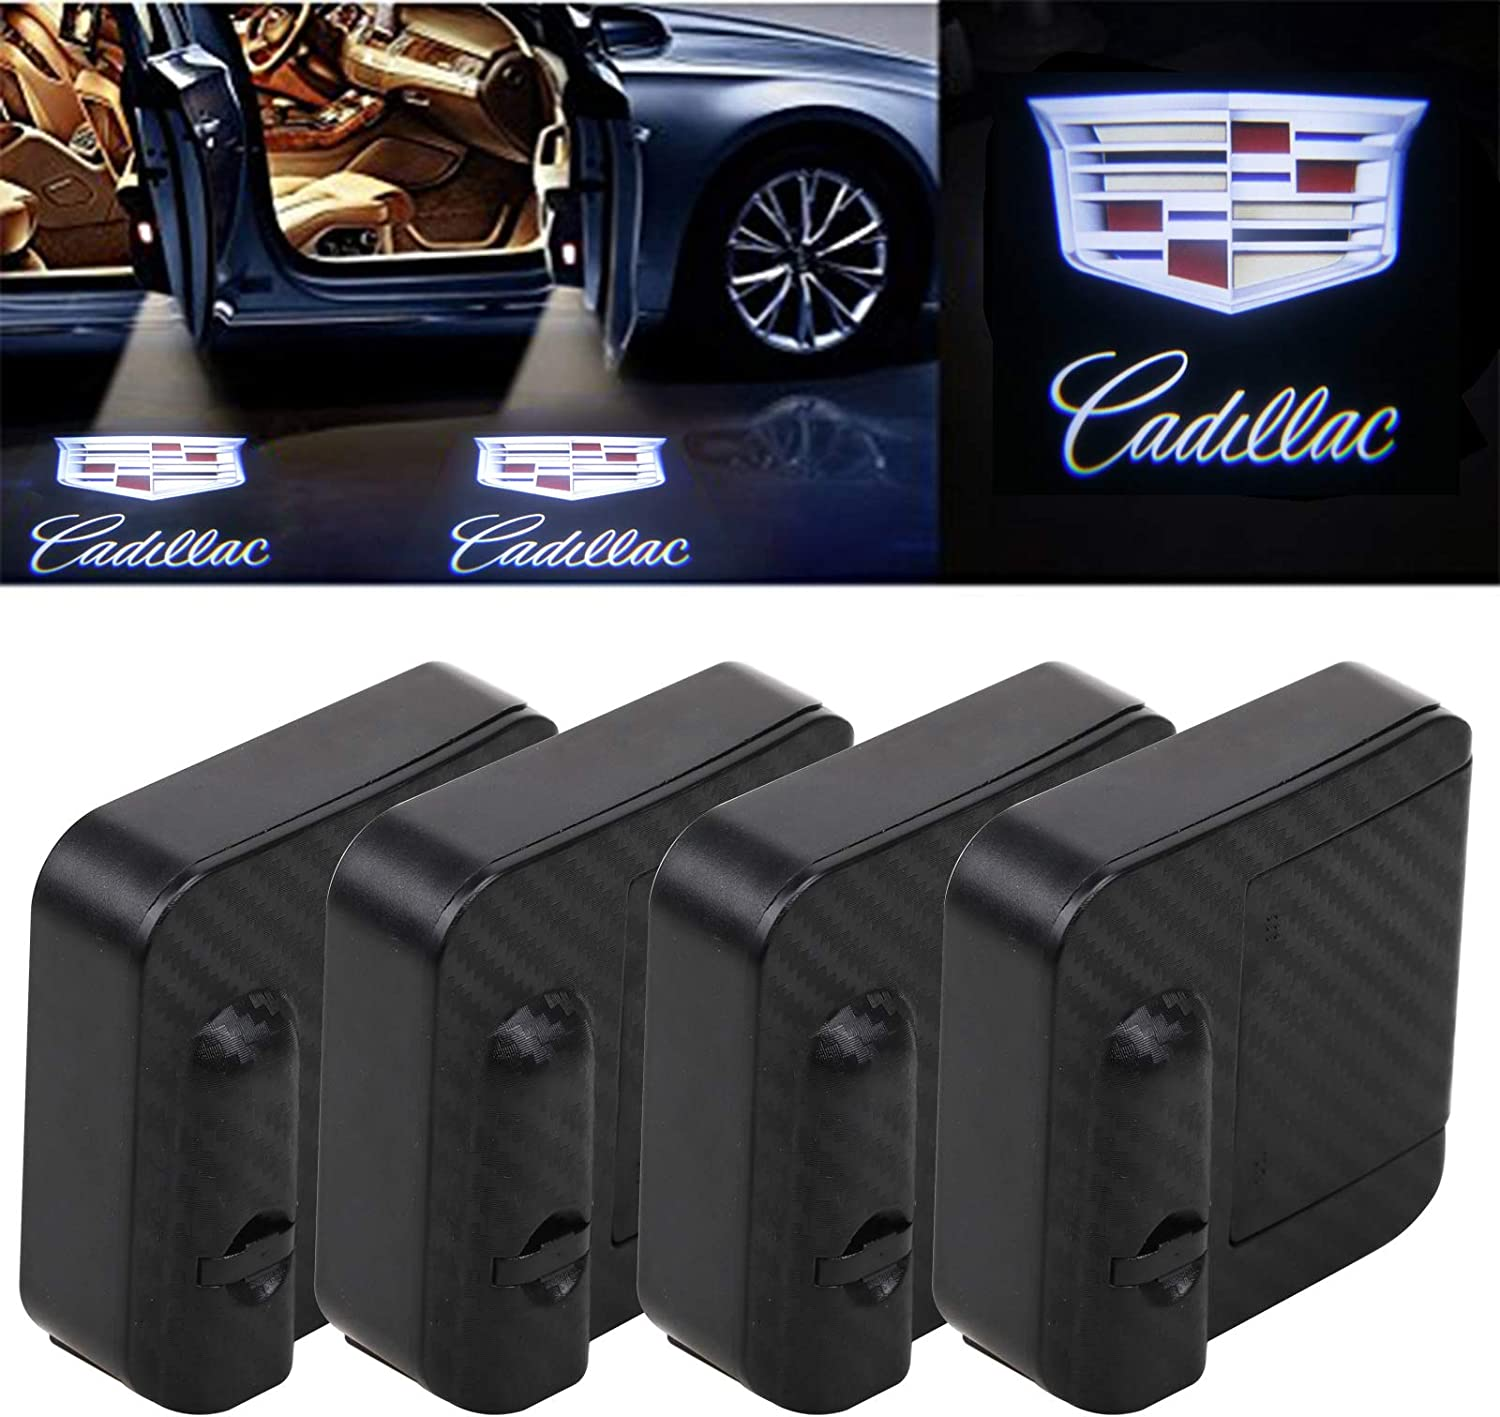 4-Pack For Cadillac Car Door Lights Logo Projector Universal Wireless New upgraded version Car Door LED Logo Lighting Projector Welcome Lights Fit All Cadillac Car Models